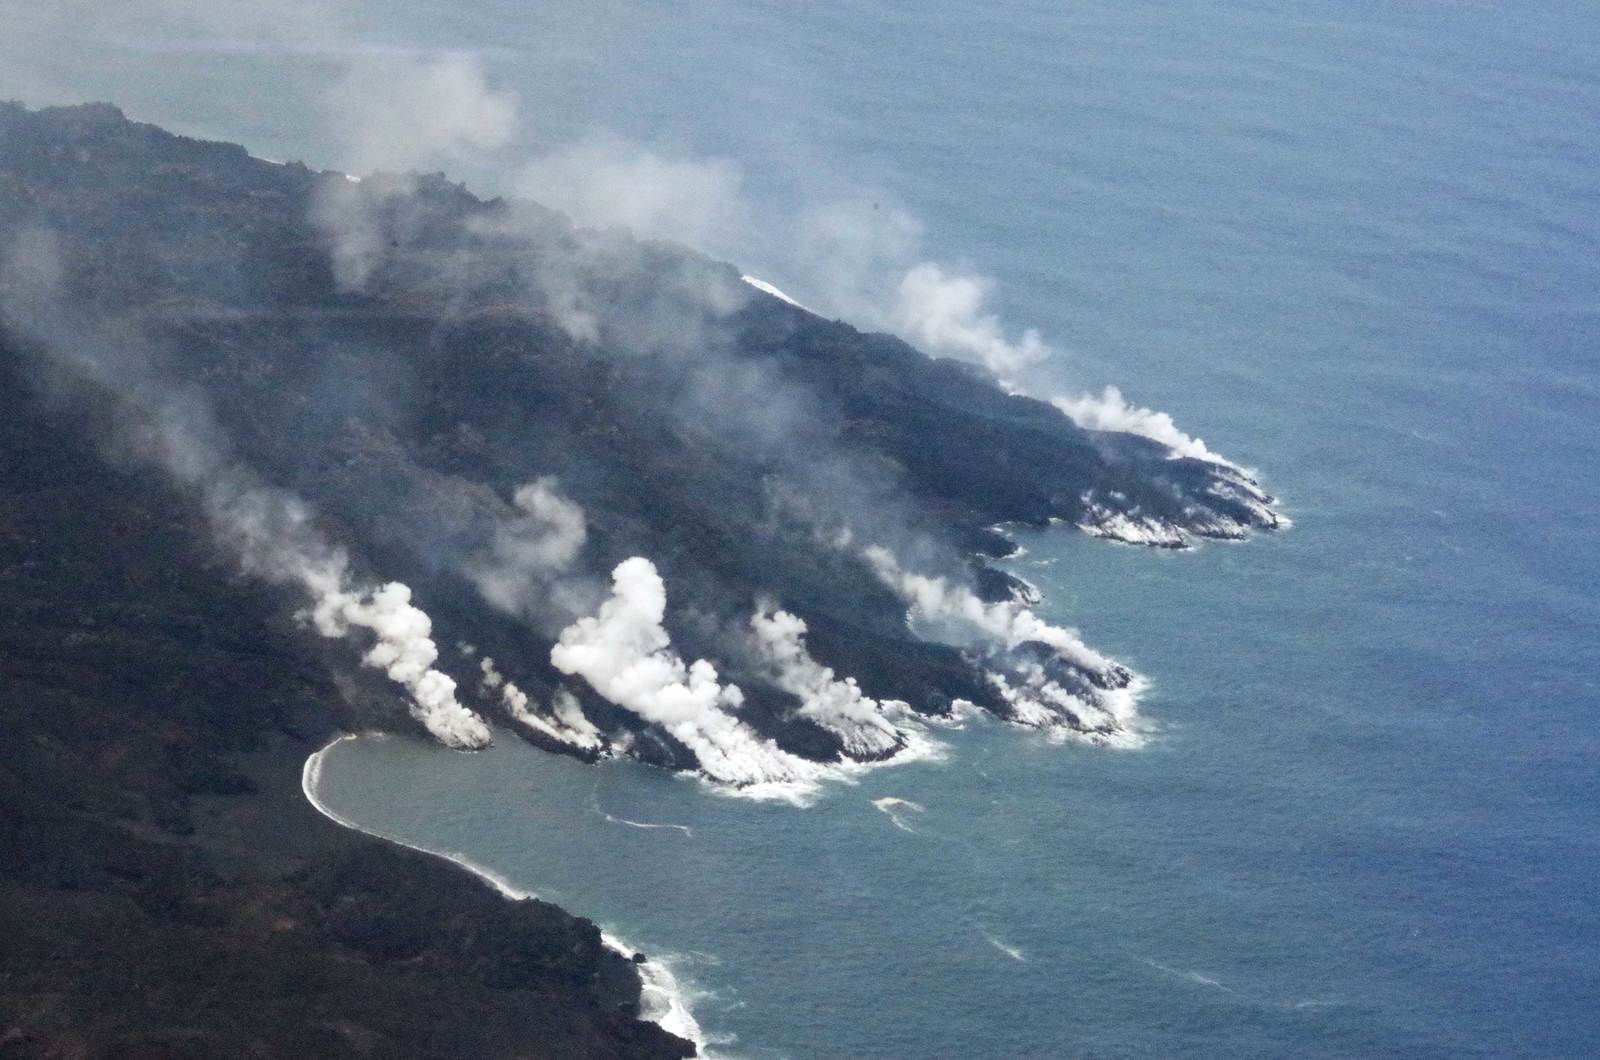 Nishinoshima - lava flow at sea - 04.29.2020 / 12:30 p.m. - photo Japan Coast Guards